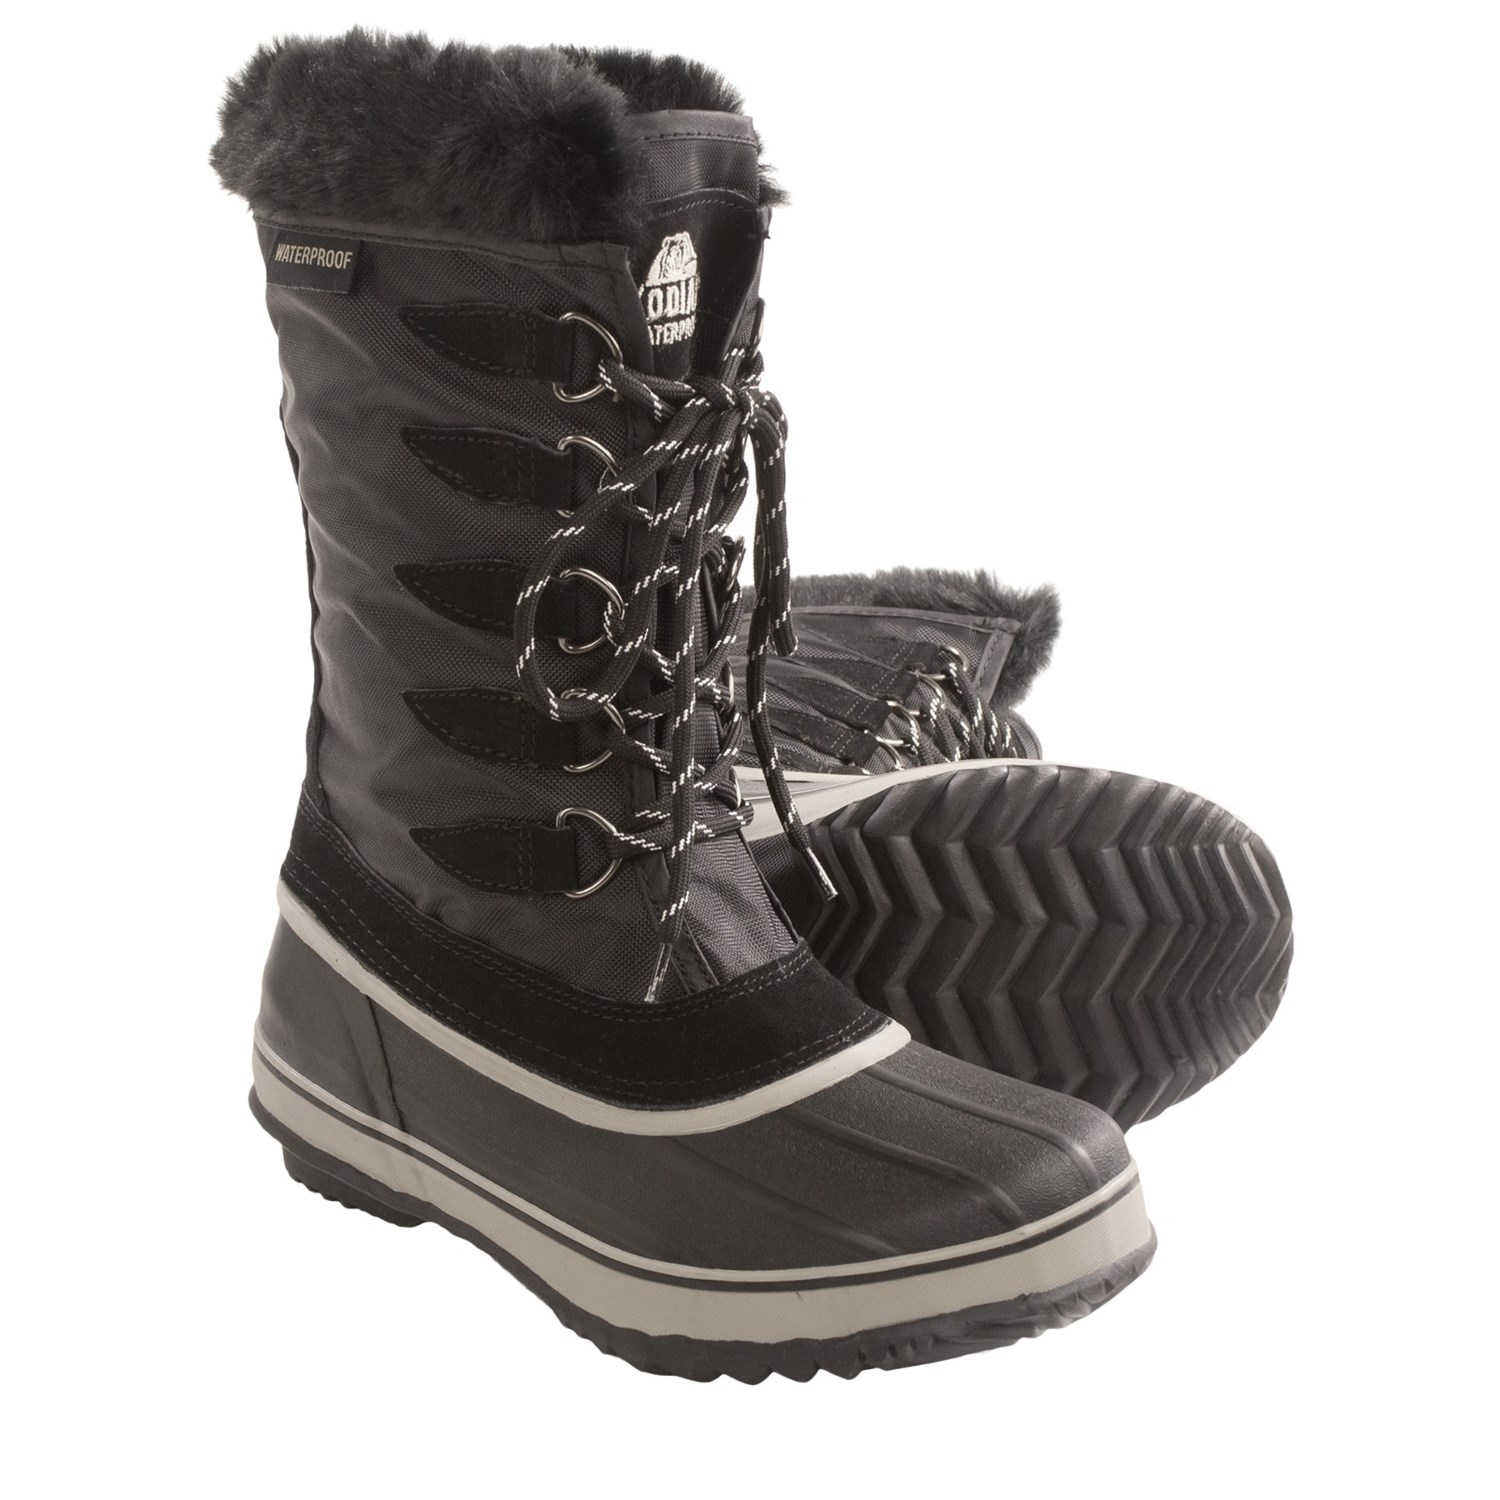 Wonderful Kodiak Womens Kyra Snow Boots 718130 Brown 4 UK 37 EU 6 ...